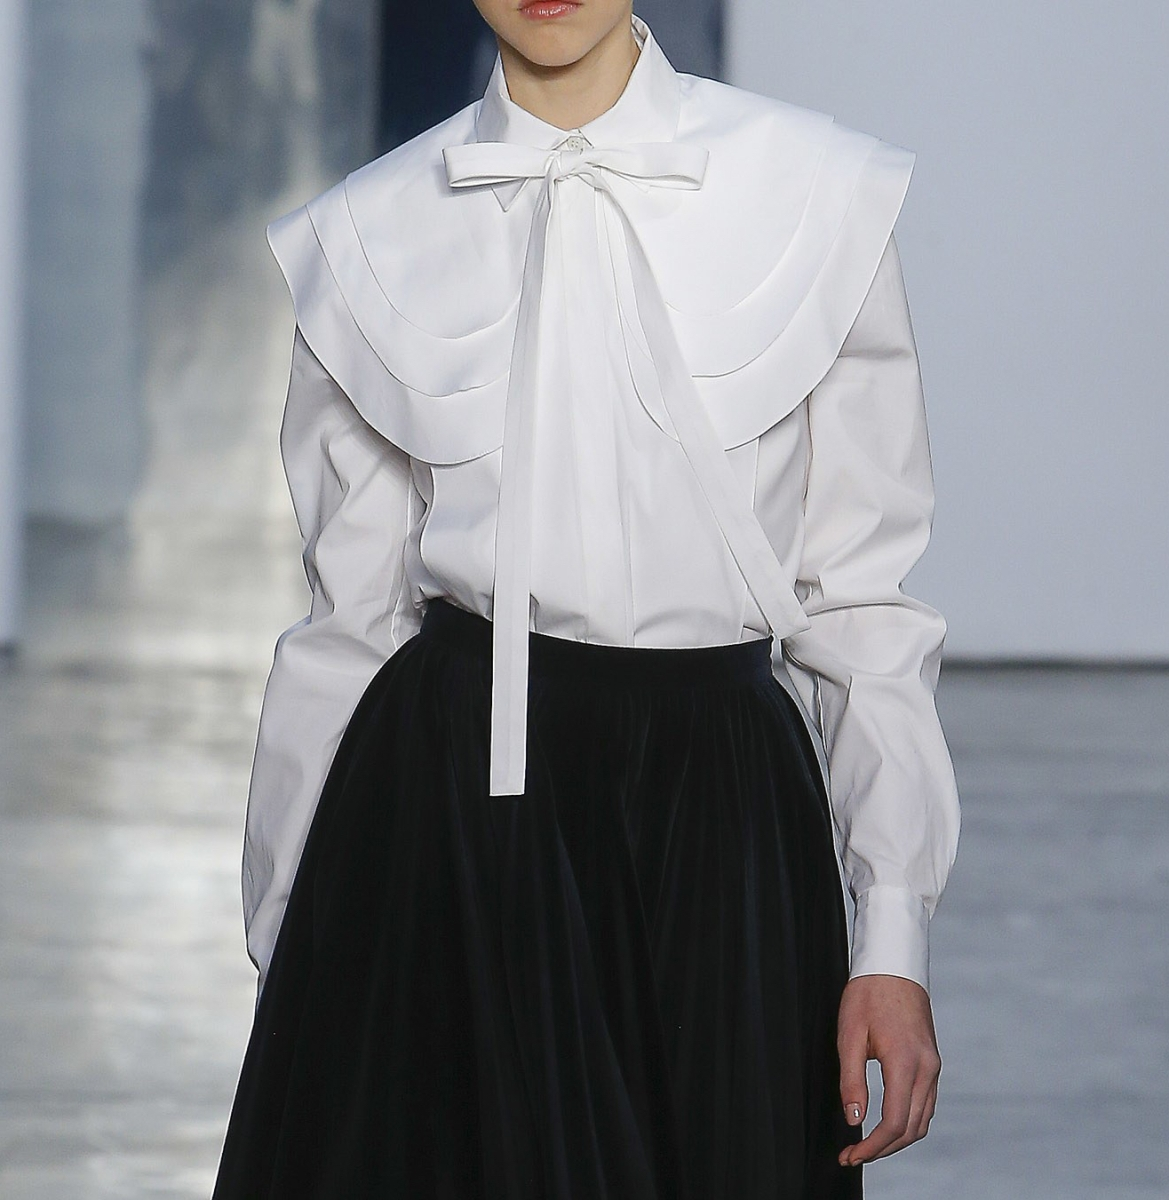 Fashion Moment Puritan Style Reddy To Wear